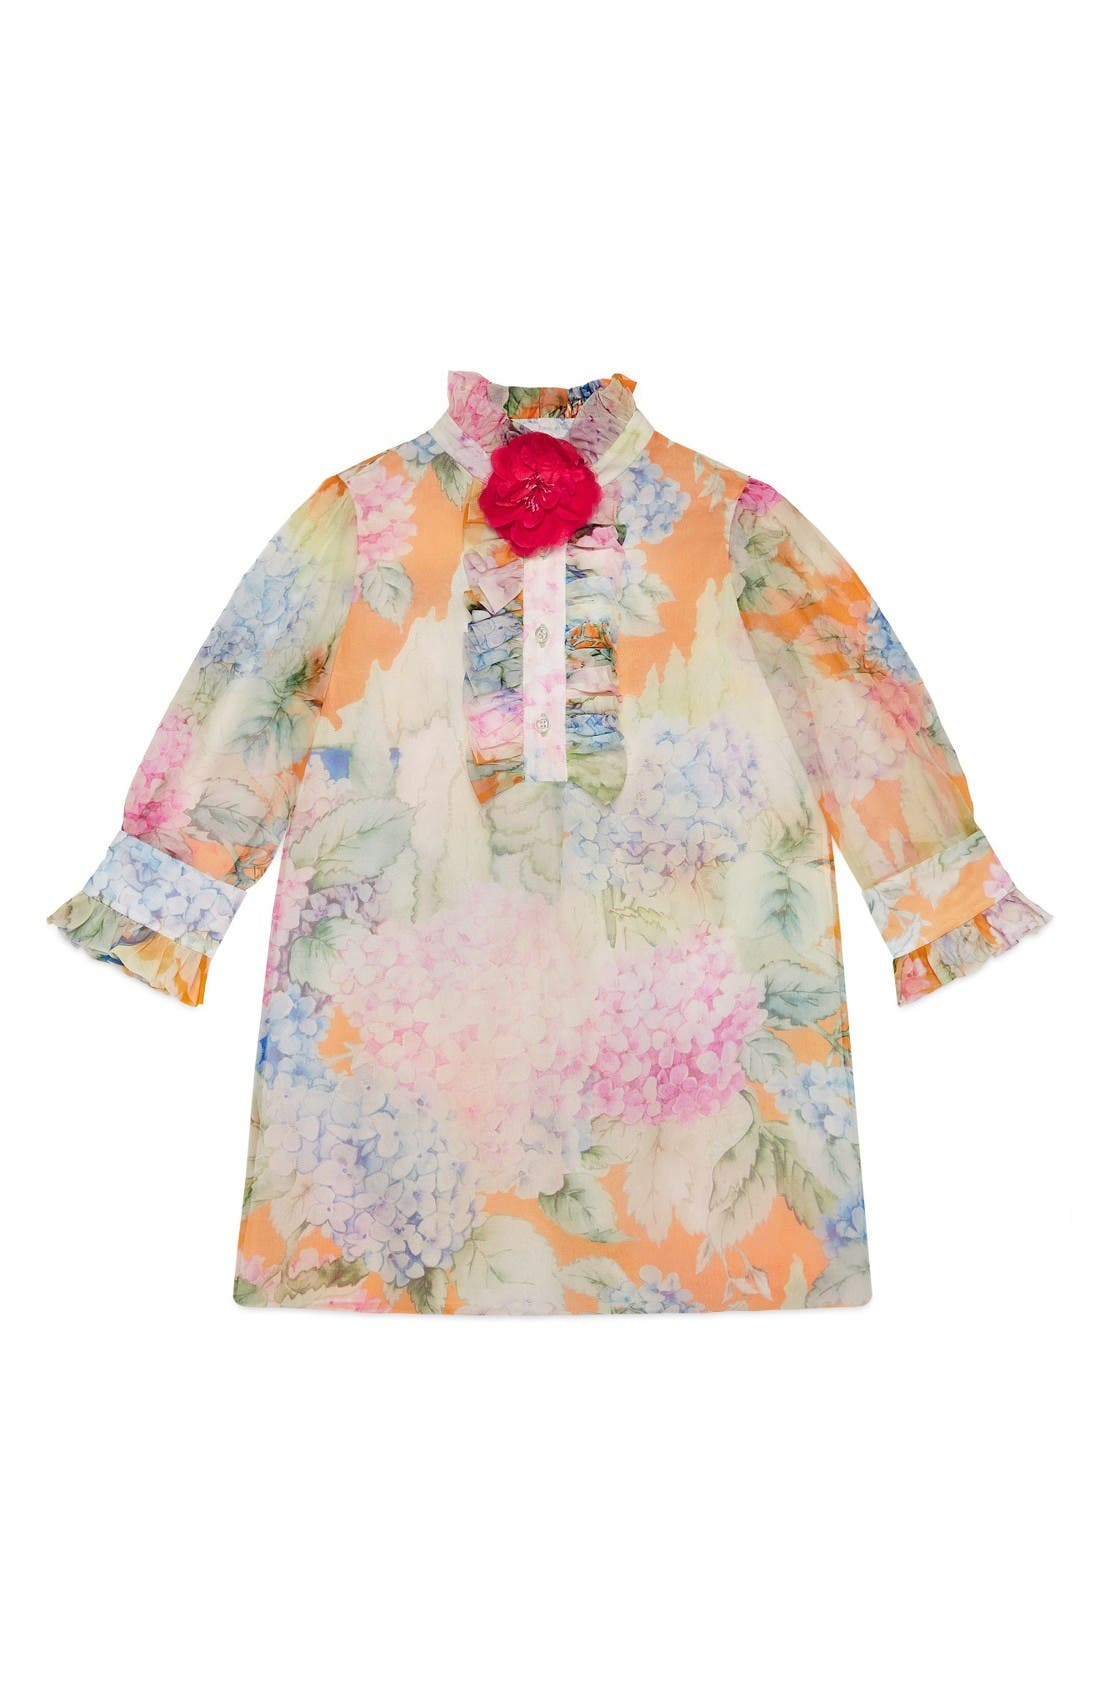 Alternate Image 1 Selected - Gucci Flower Ruffle Silk Organza Dress (Little Girls & Big Girls)